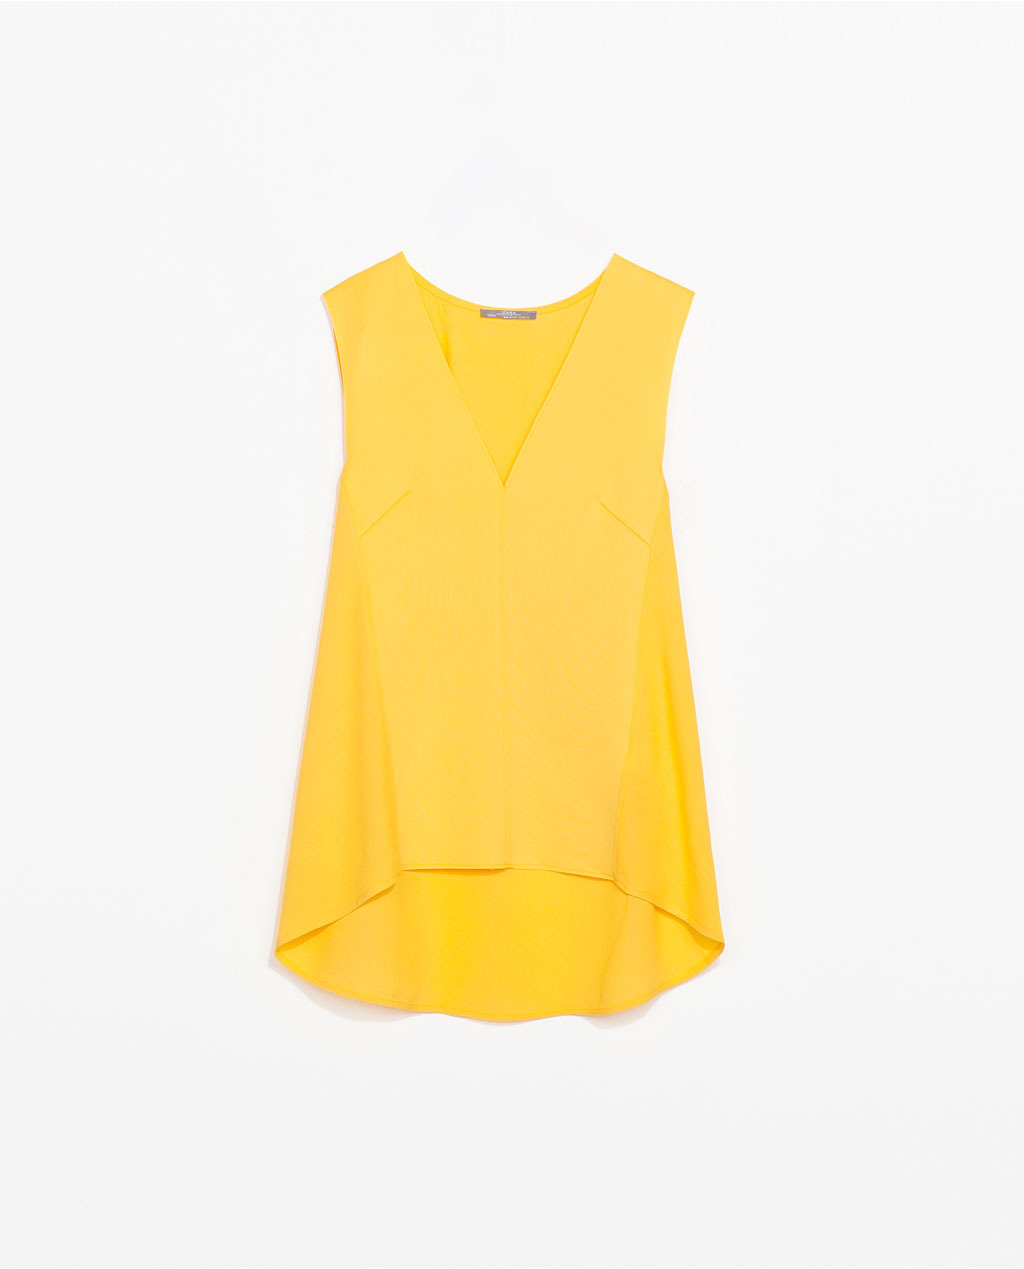 V Neck Top - neckline: low v-neck; pattern: plain; sleeve style: sleeveless; style: vest top; predominant colour: yellow; occasions: casual, creative work; length: standard; fibres: viscose/rayon - 100%; fit: loose; back detail: longer hem at back than at front; sleeve length: sleeveless; texture group: crepes; pattern type: fabric; trends: hot brights; season: s/s 2014